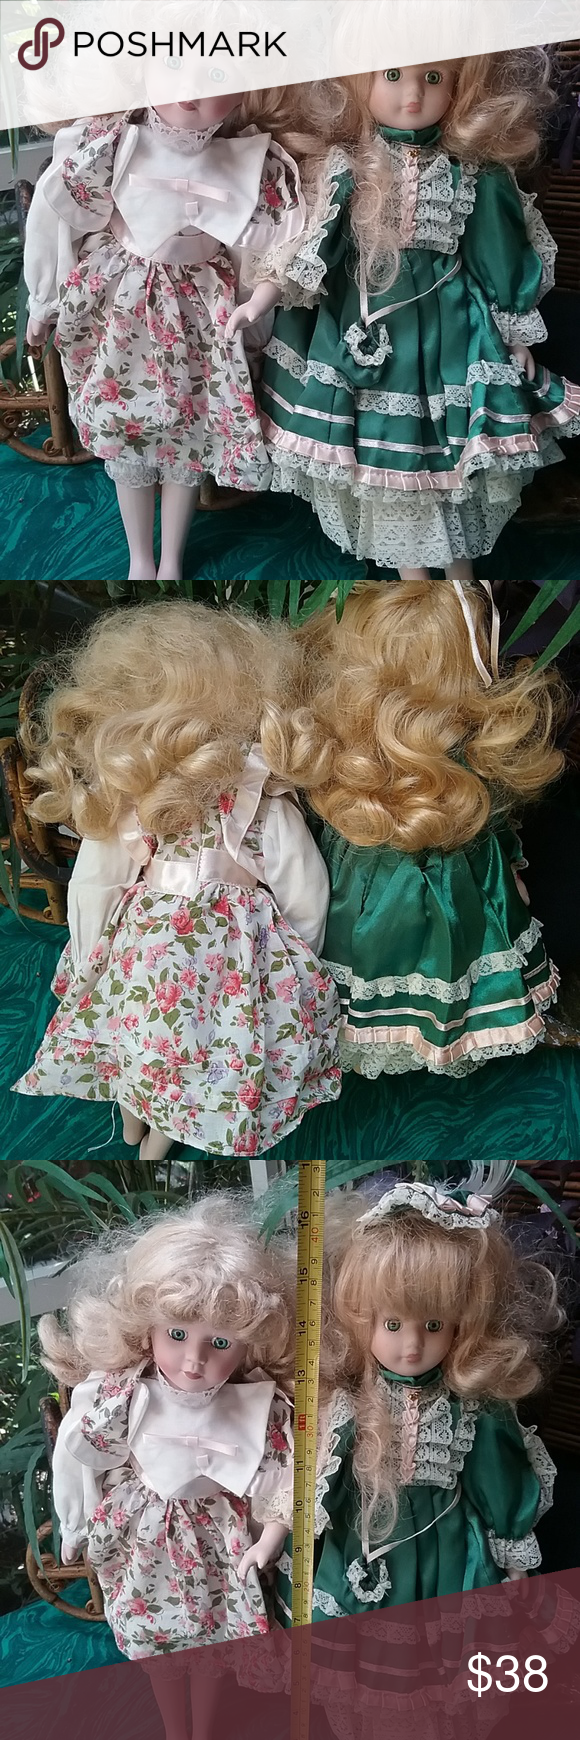 2 Vintage The Collection Porcelain Dolls Victorian 2 Vintages The Collection  Porcelain Dolls~Victorian Dressed 20  Beautifull !!! Other #dollvictoriandressstyles 2 Vintage The Collection Porcelain Dolls Victorian 2 Vintages The Collection  Porcelain Dolls~Victorian Dressed 20  Beautifull !!! Other #dollvictoriandressstyles